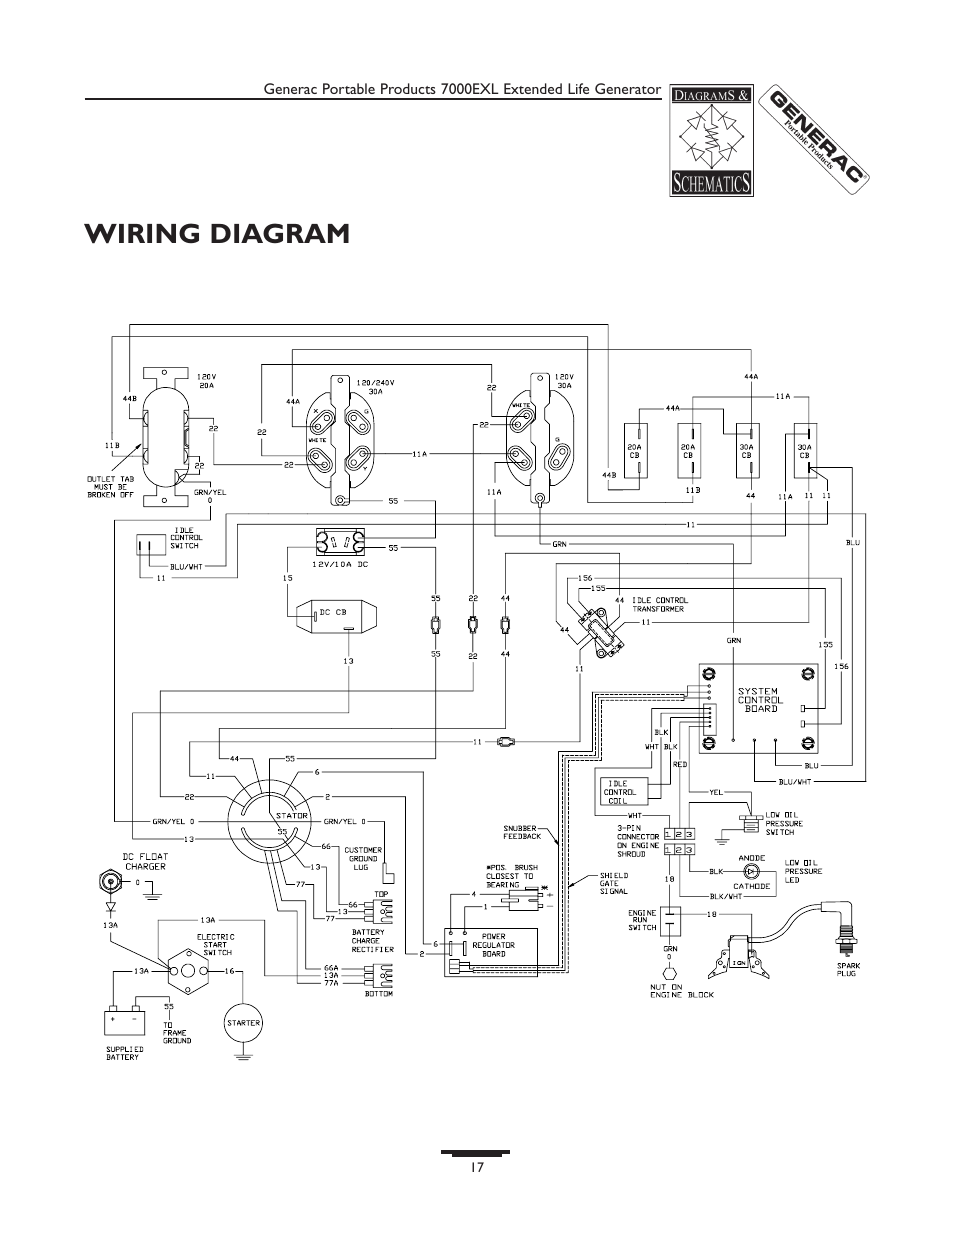 generac portable generator wiring diagram wiring diagram | generac 7000exl user manual | page 17 / 24 generac portable generator wiring diagram can